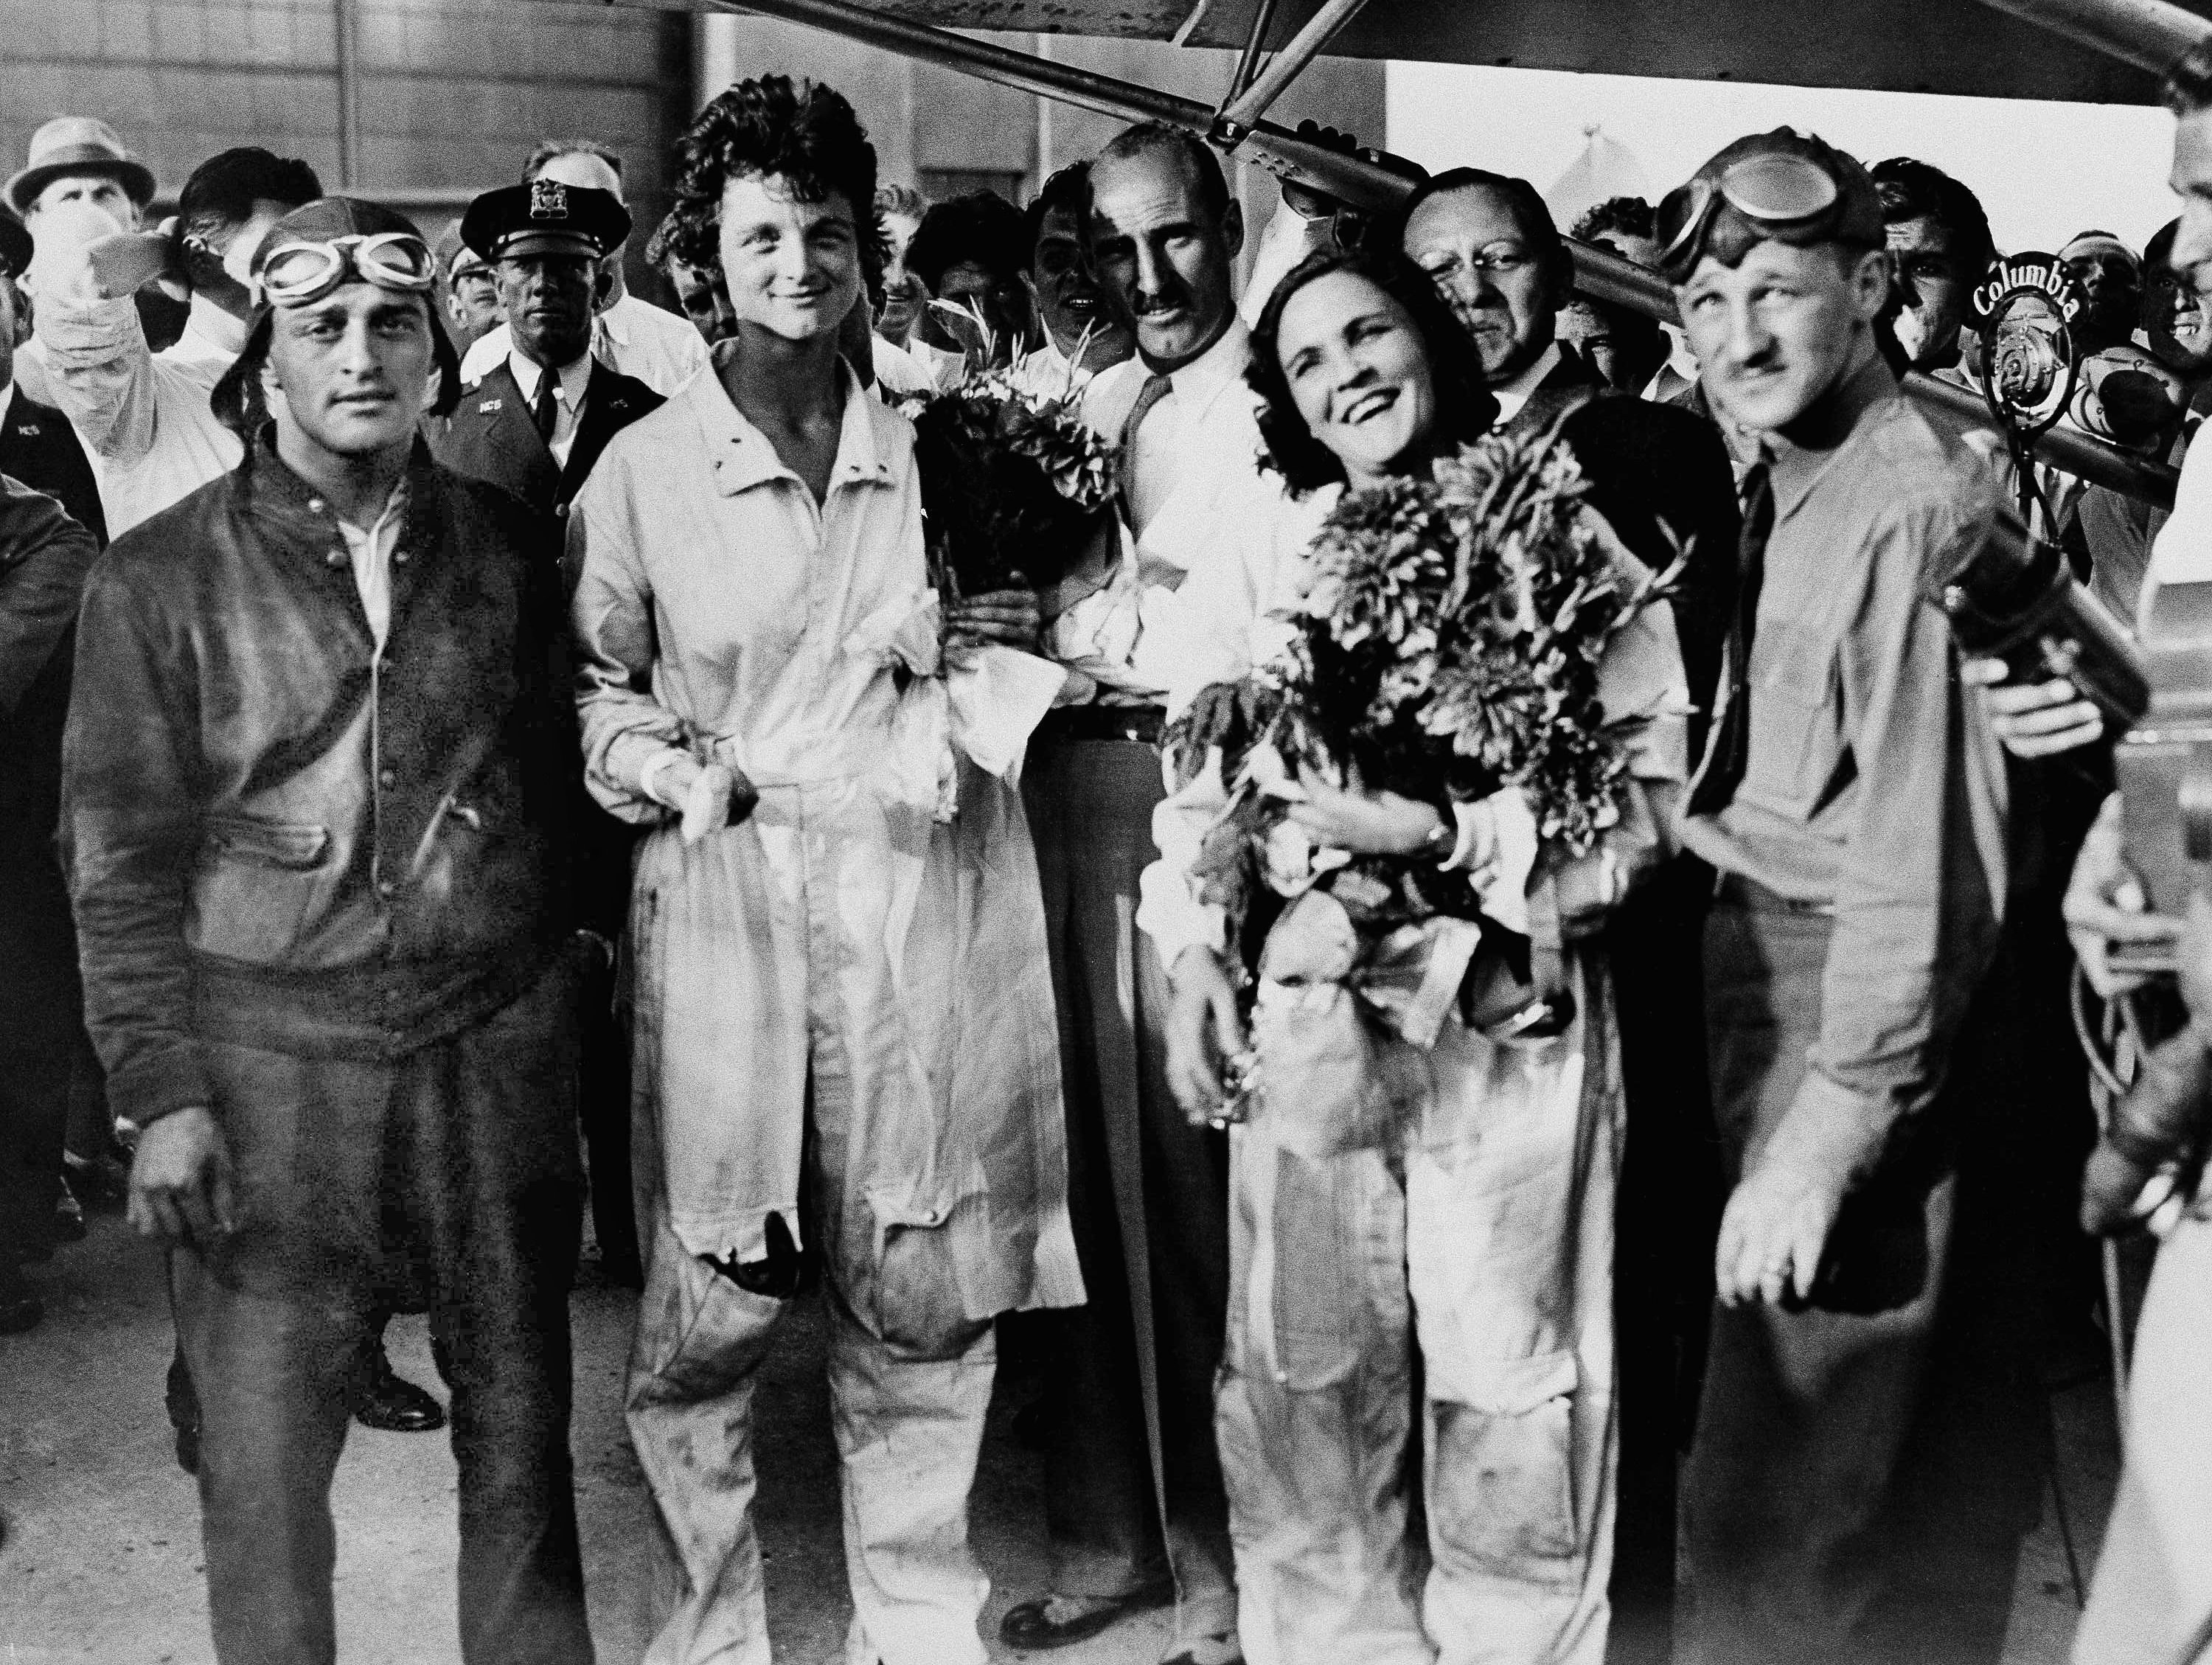 Louise Thaden (left) and Frances Marsalis after alighting from their plane at Roosevelt Field, Long Island, New York, on August 22, 1932, when they set a new women's endurance flight record with 196 hours, 6 minutes in the air. The previous record was 123 hours set in 1931 by Bobby Trout and Edna May Cooper. Others in the photo, from left: John Runger, who flew in the refueling plane; Charles S. (Casey) Jones, noted flier; and Stewart Reiss, pilot of the refueling plane. (AP file photo)